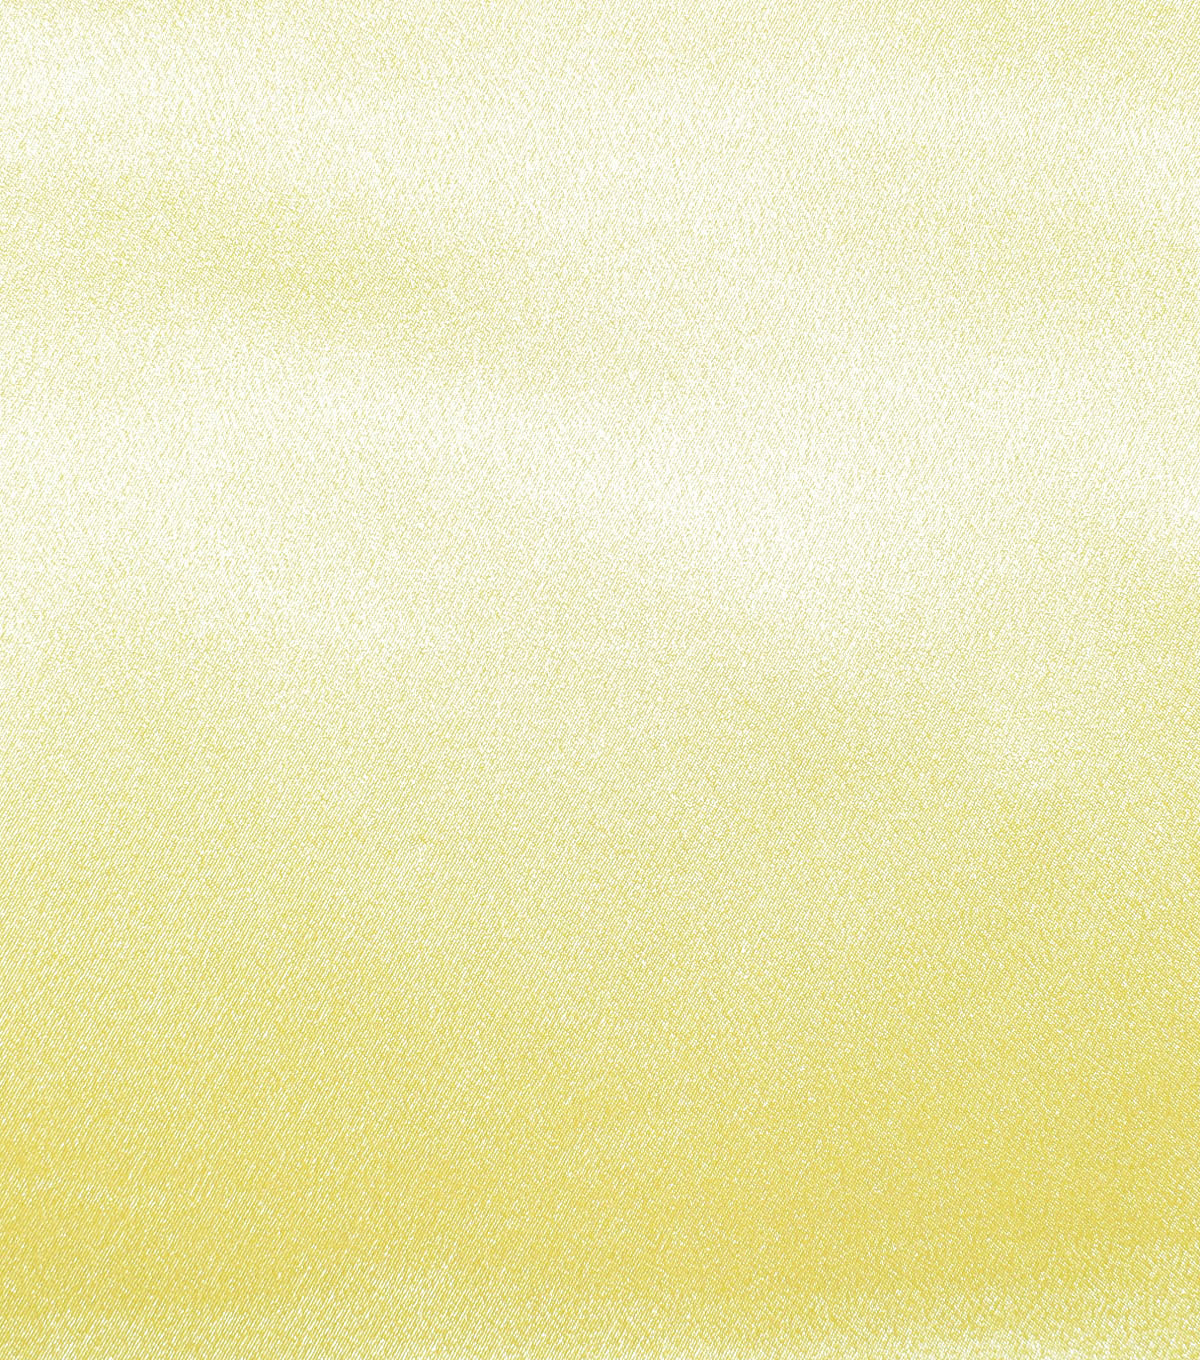 Casa Dahlia Crepeback Satin Fabric-Solids, Lemon Meringue